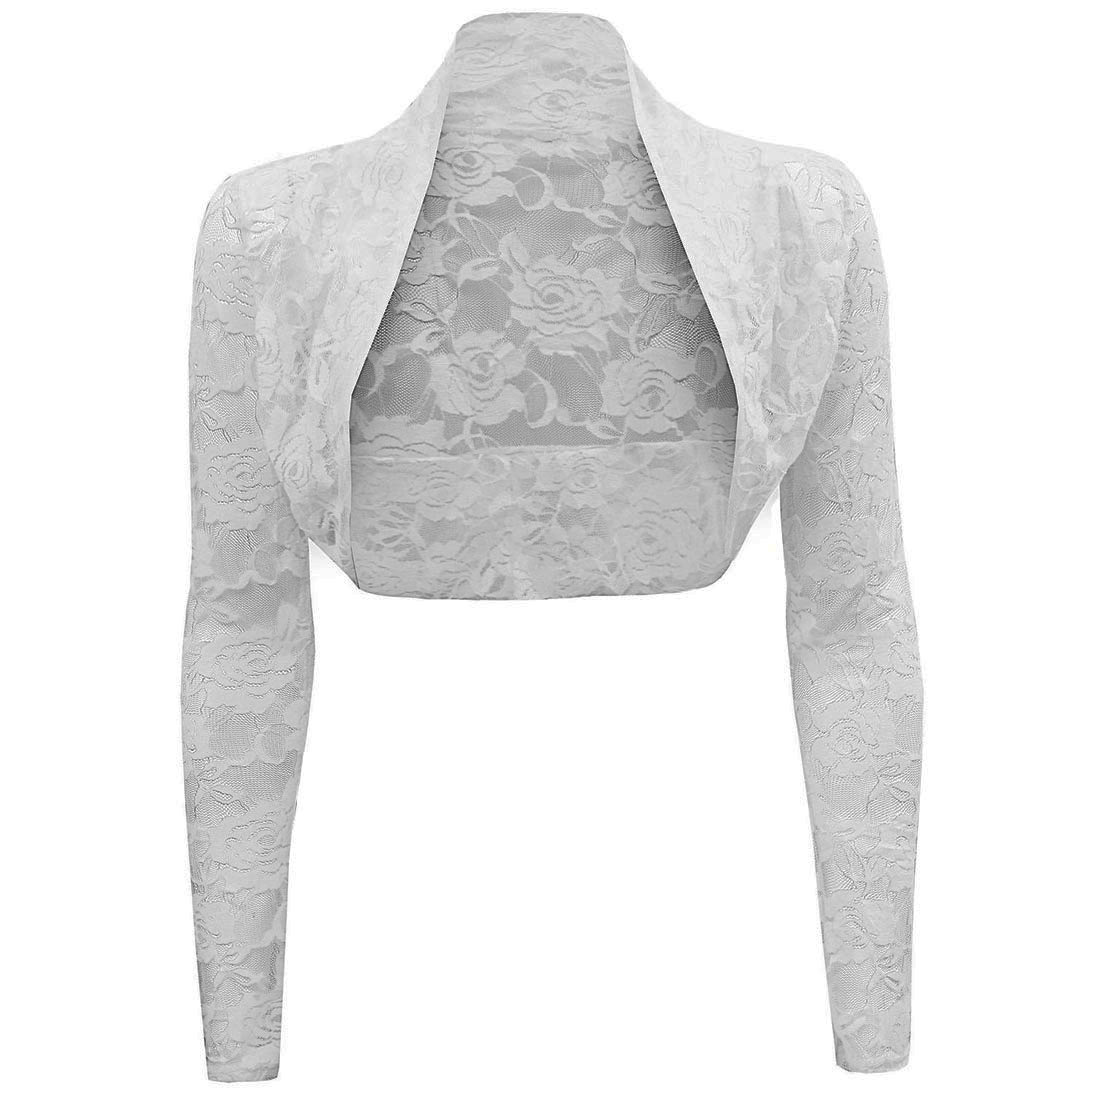 Womens Floral Sheer Lace Long Sleeve Bolero Shrug Knit Cardigan ...